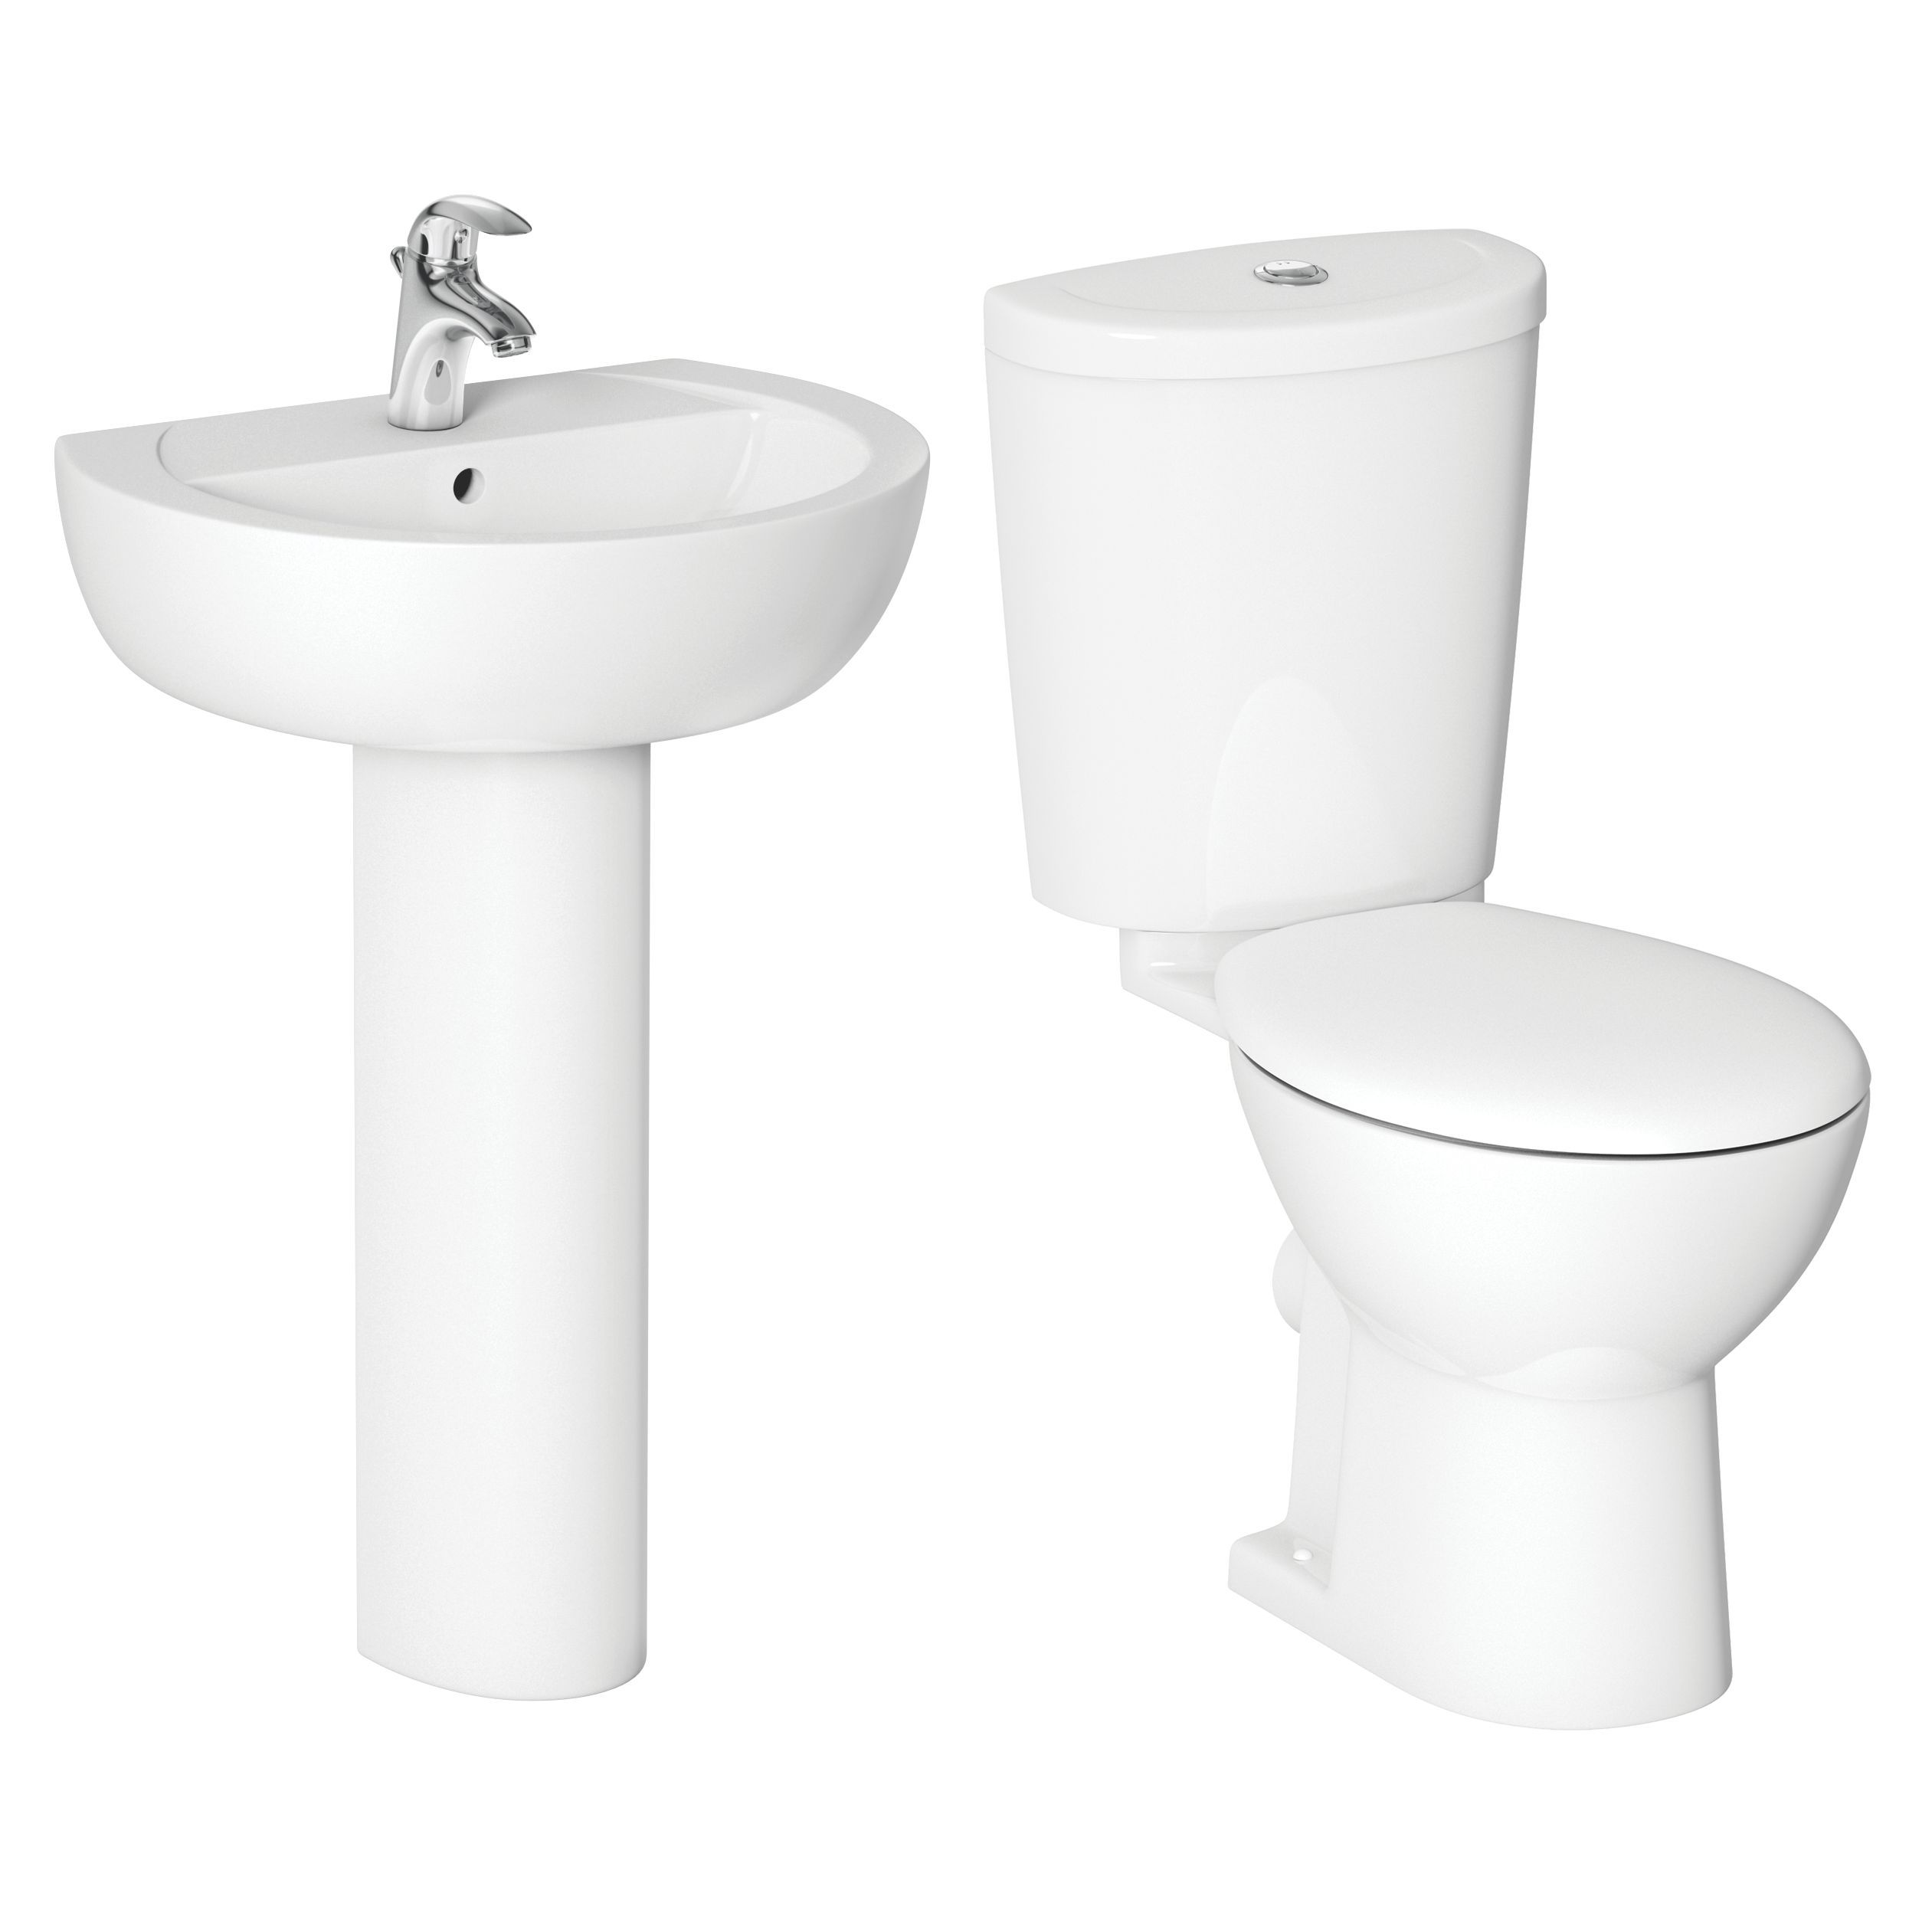 Bathroom Cabinets Uk Bq Cooke Lewis Alonso Toilet Basin Pack Departments Diy At